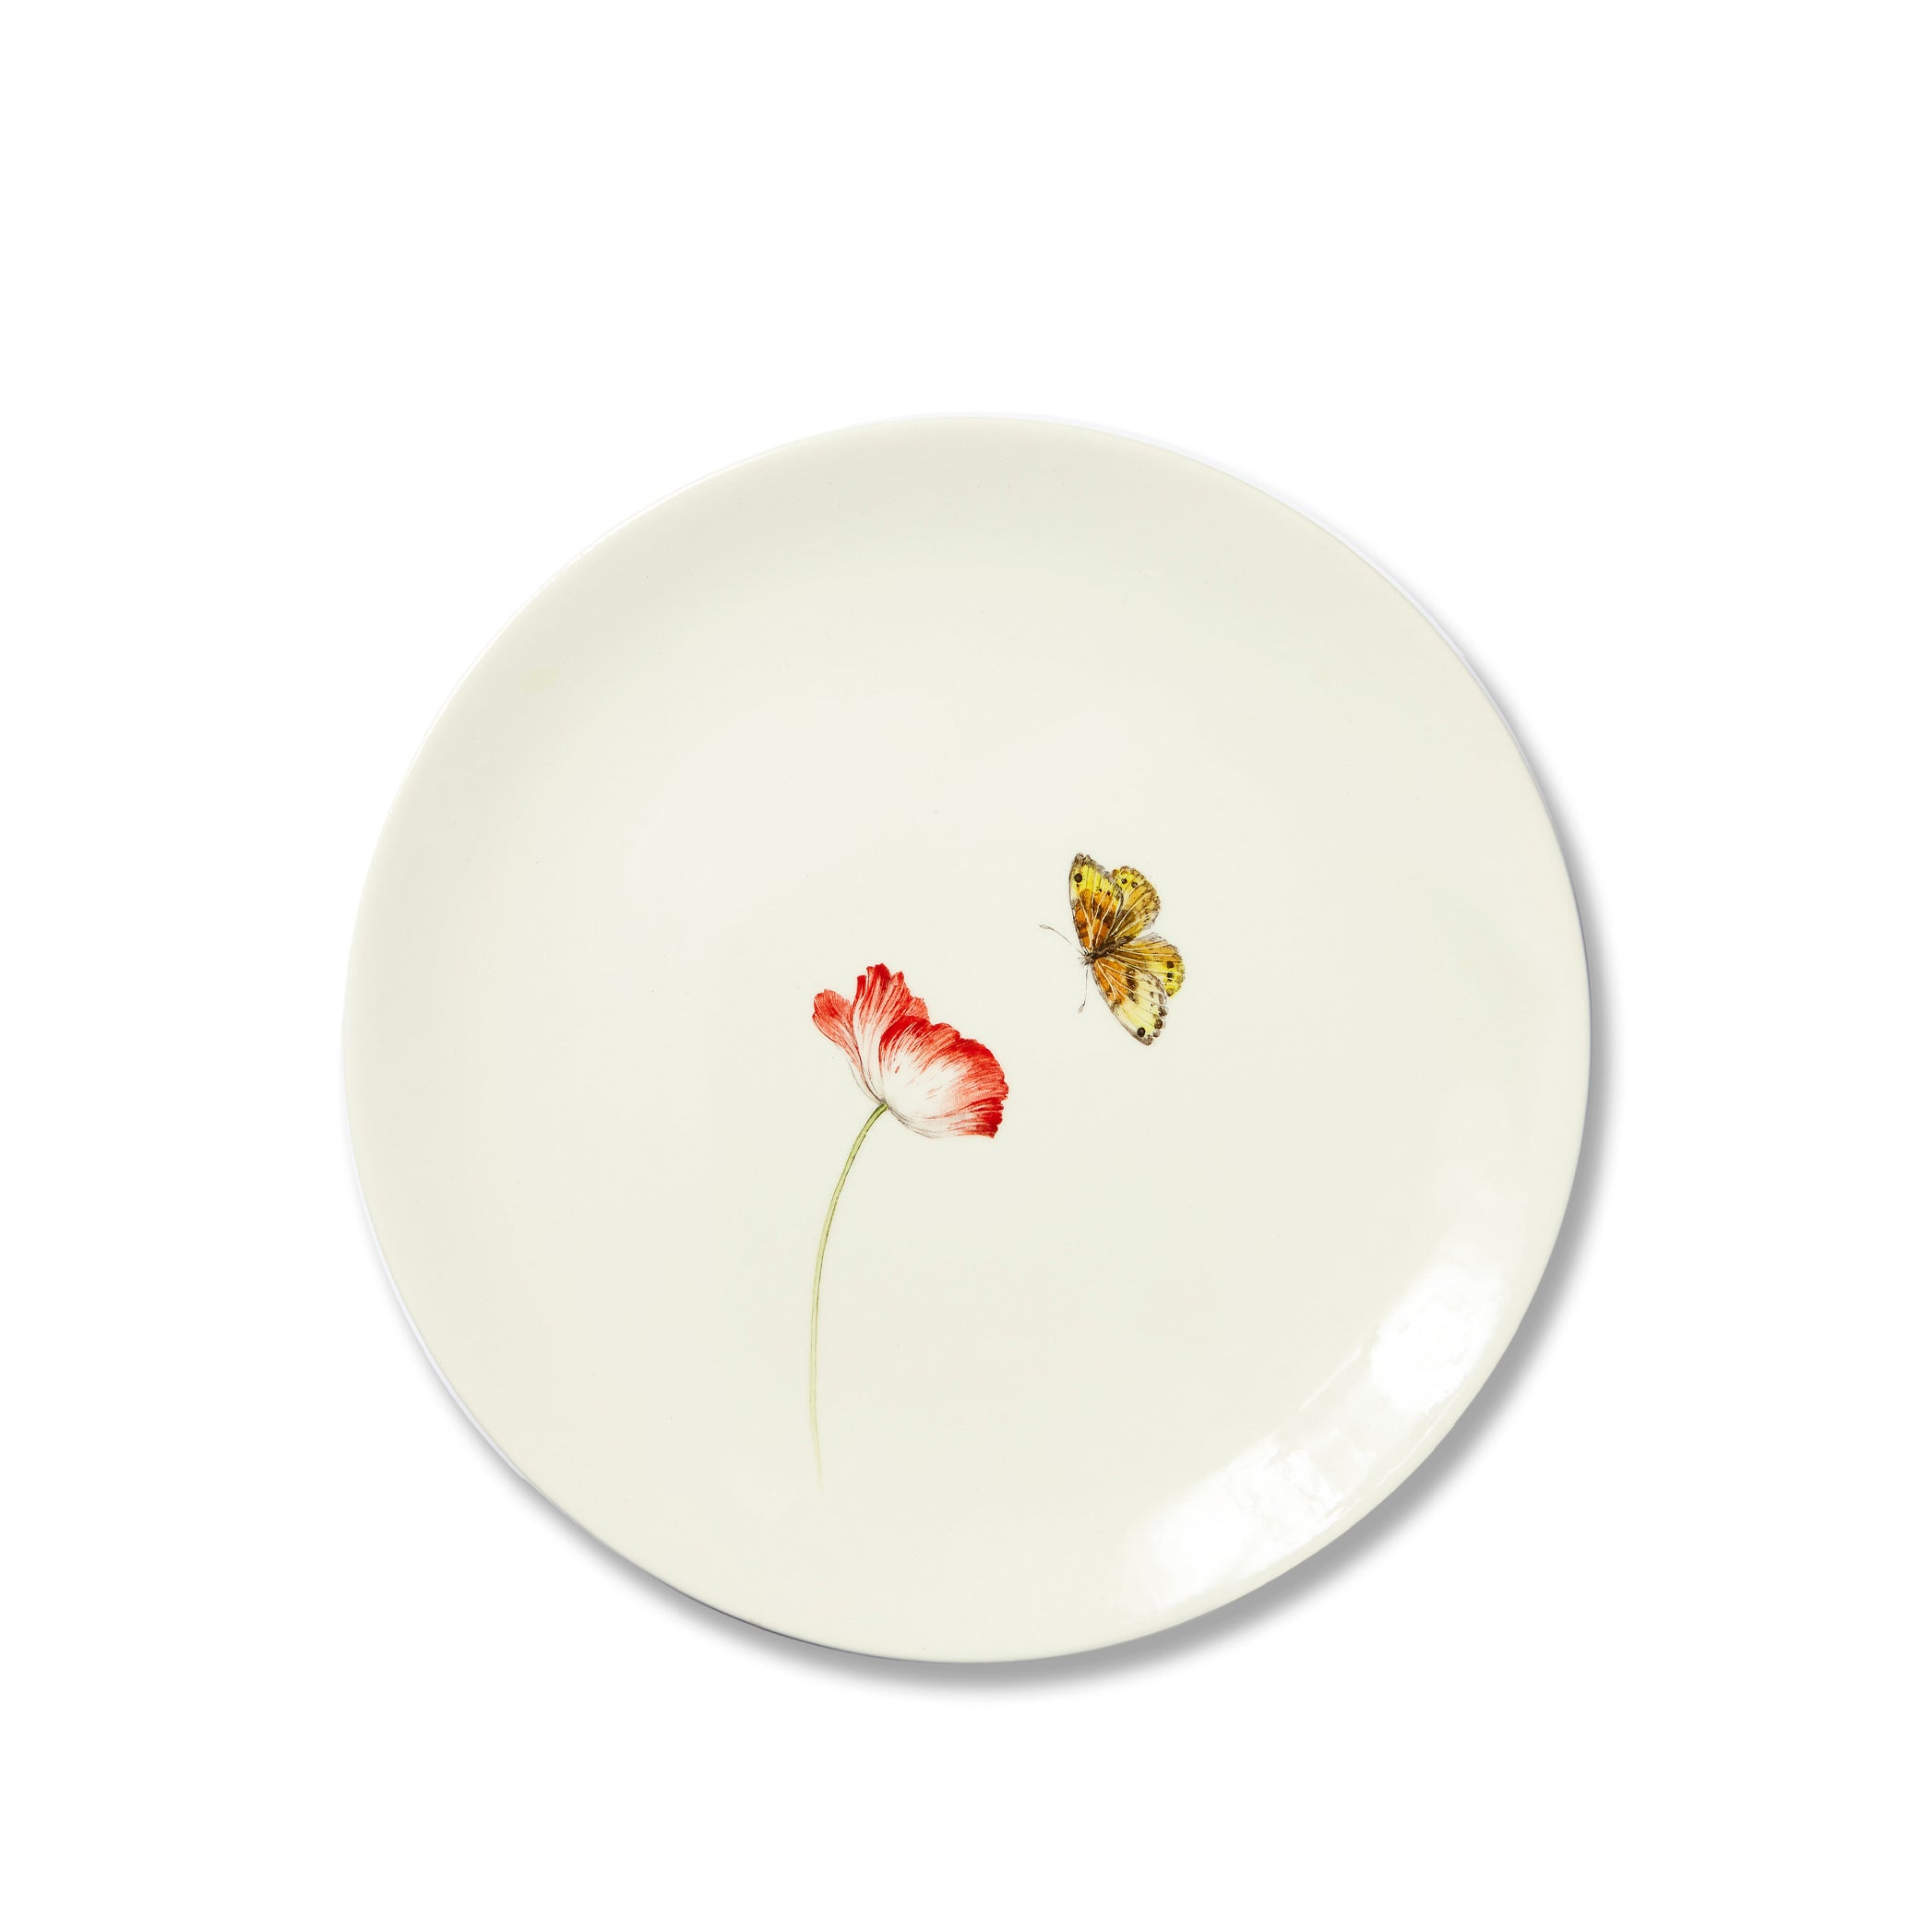 Bloom Tulipae Dinner Plate, 25cm